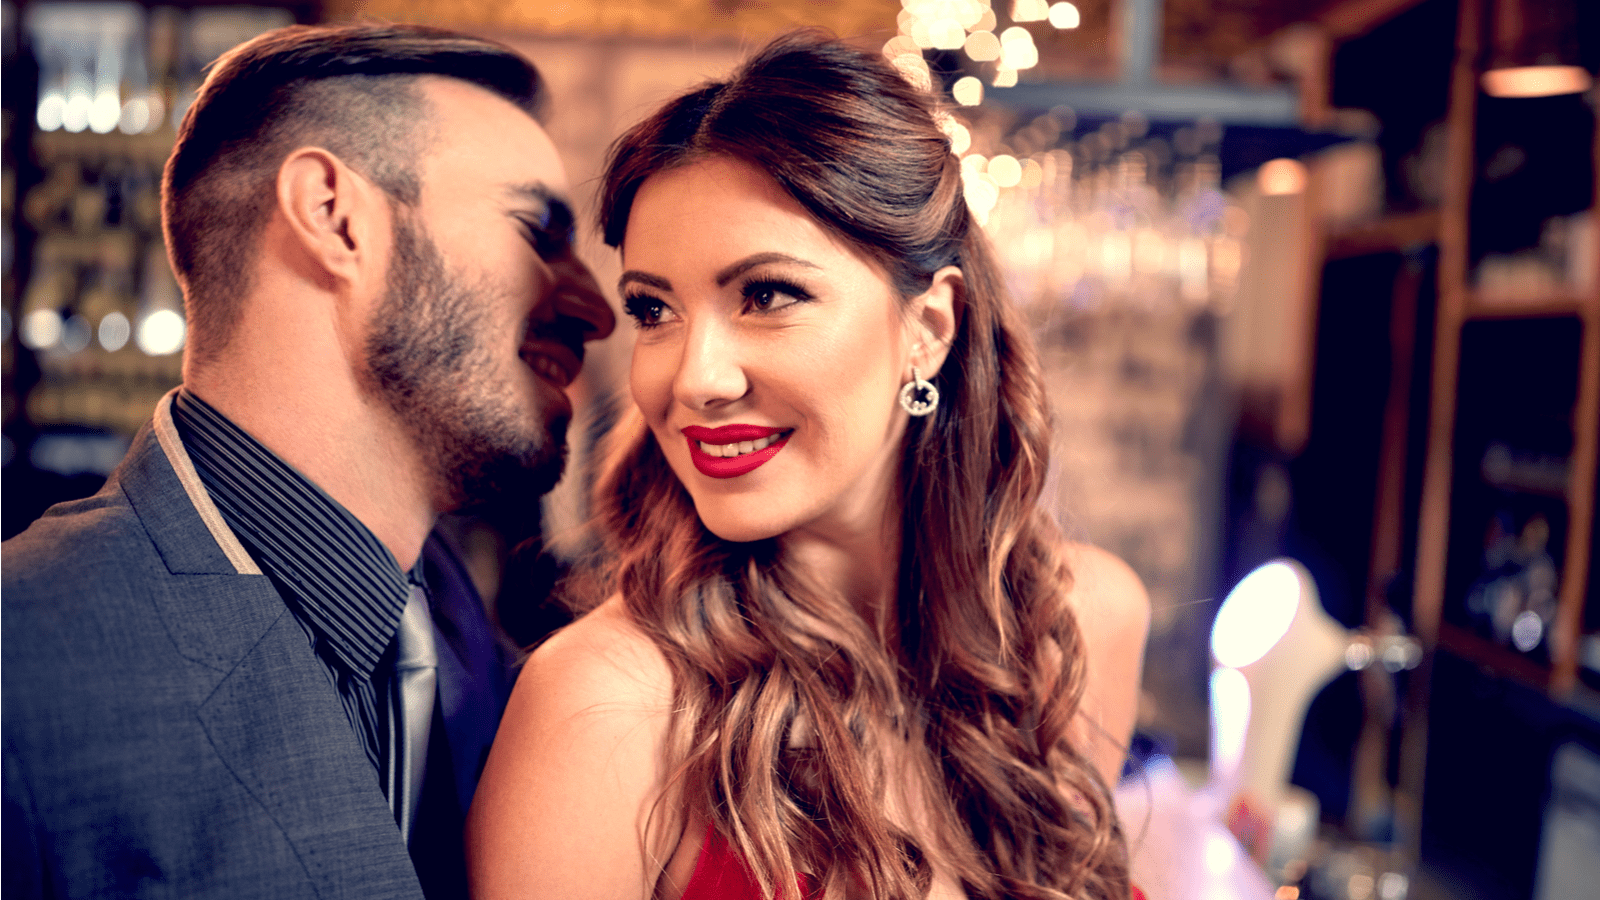 15 Things You Should Never Say To A Man On The First Date